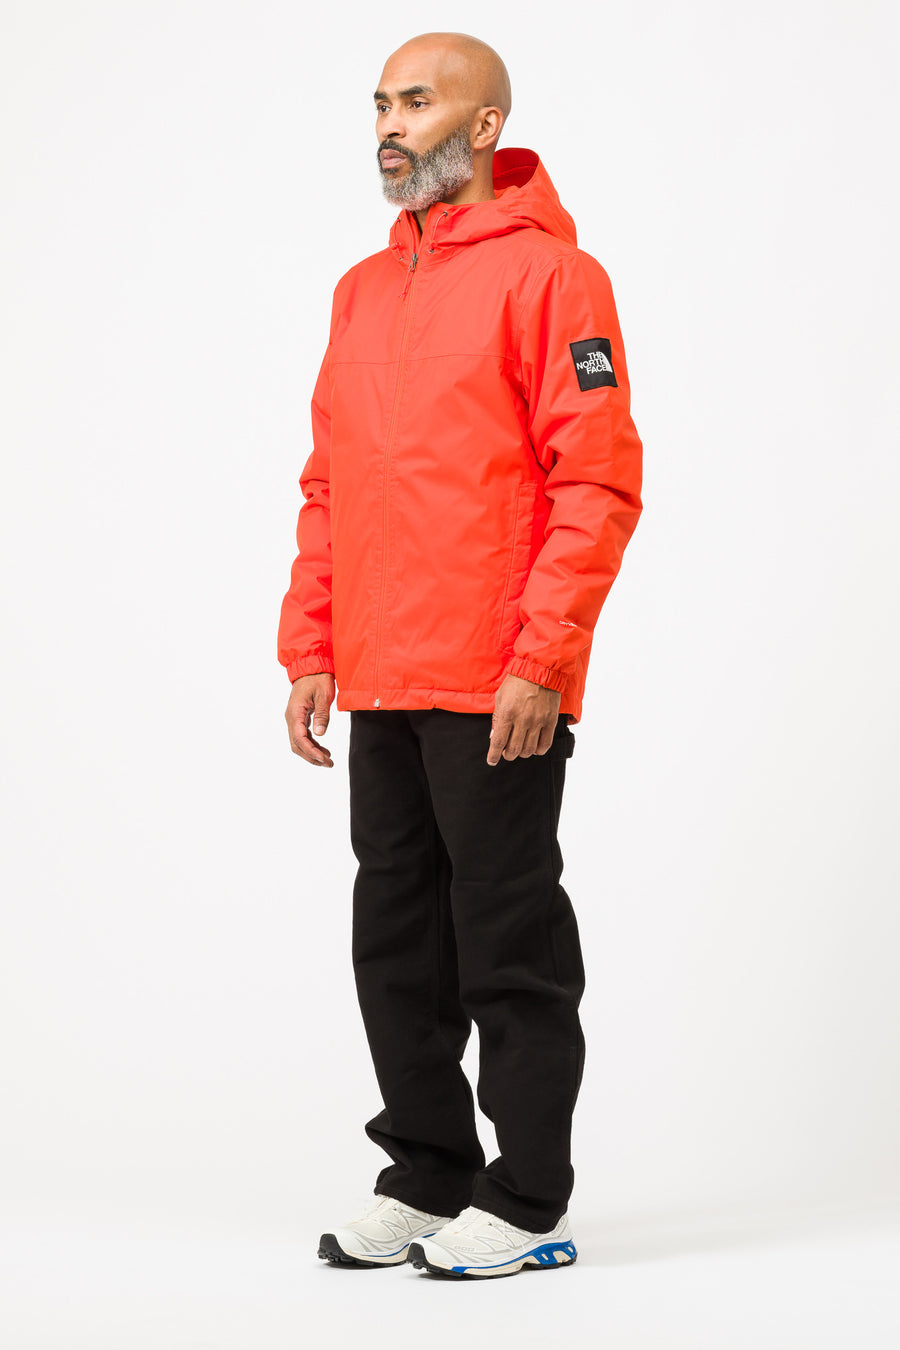 The North Face Mountain Insulated Jacket in Tangerine - Notre